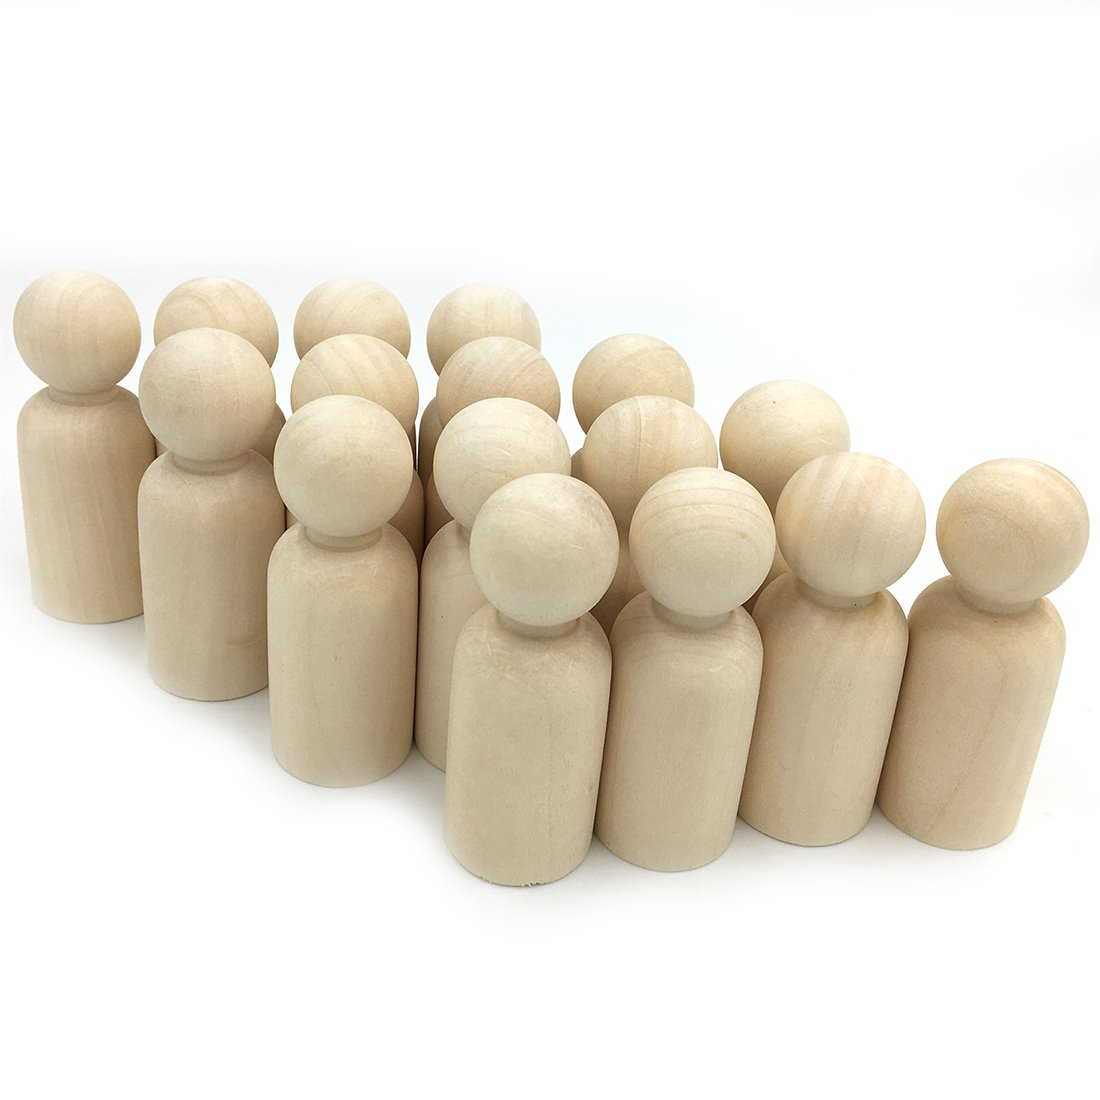 Coskiss 10pcs Madera Personas (chico) 2.56 (65mm) Solid Hard Nature Unfinished Alta Calidad Gangway Ready Paint o Stained Wooden Doll (Color madera 10pcs)